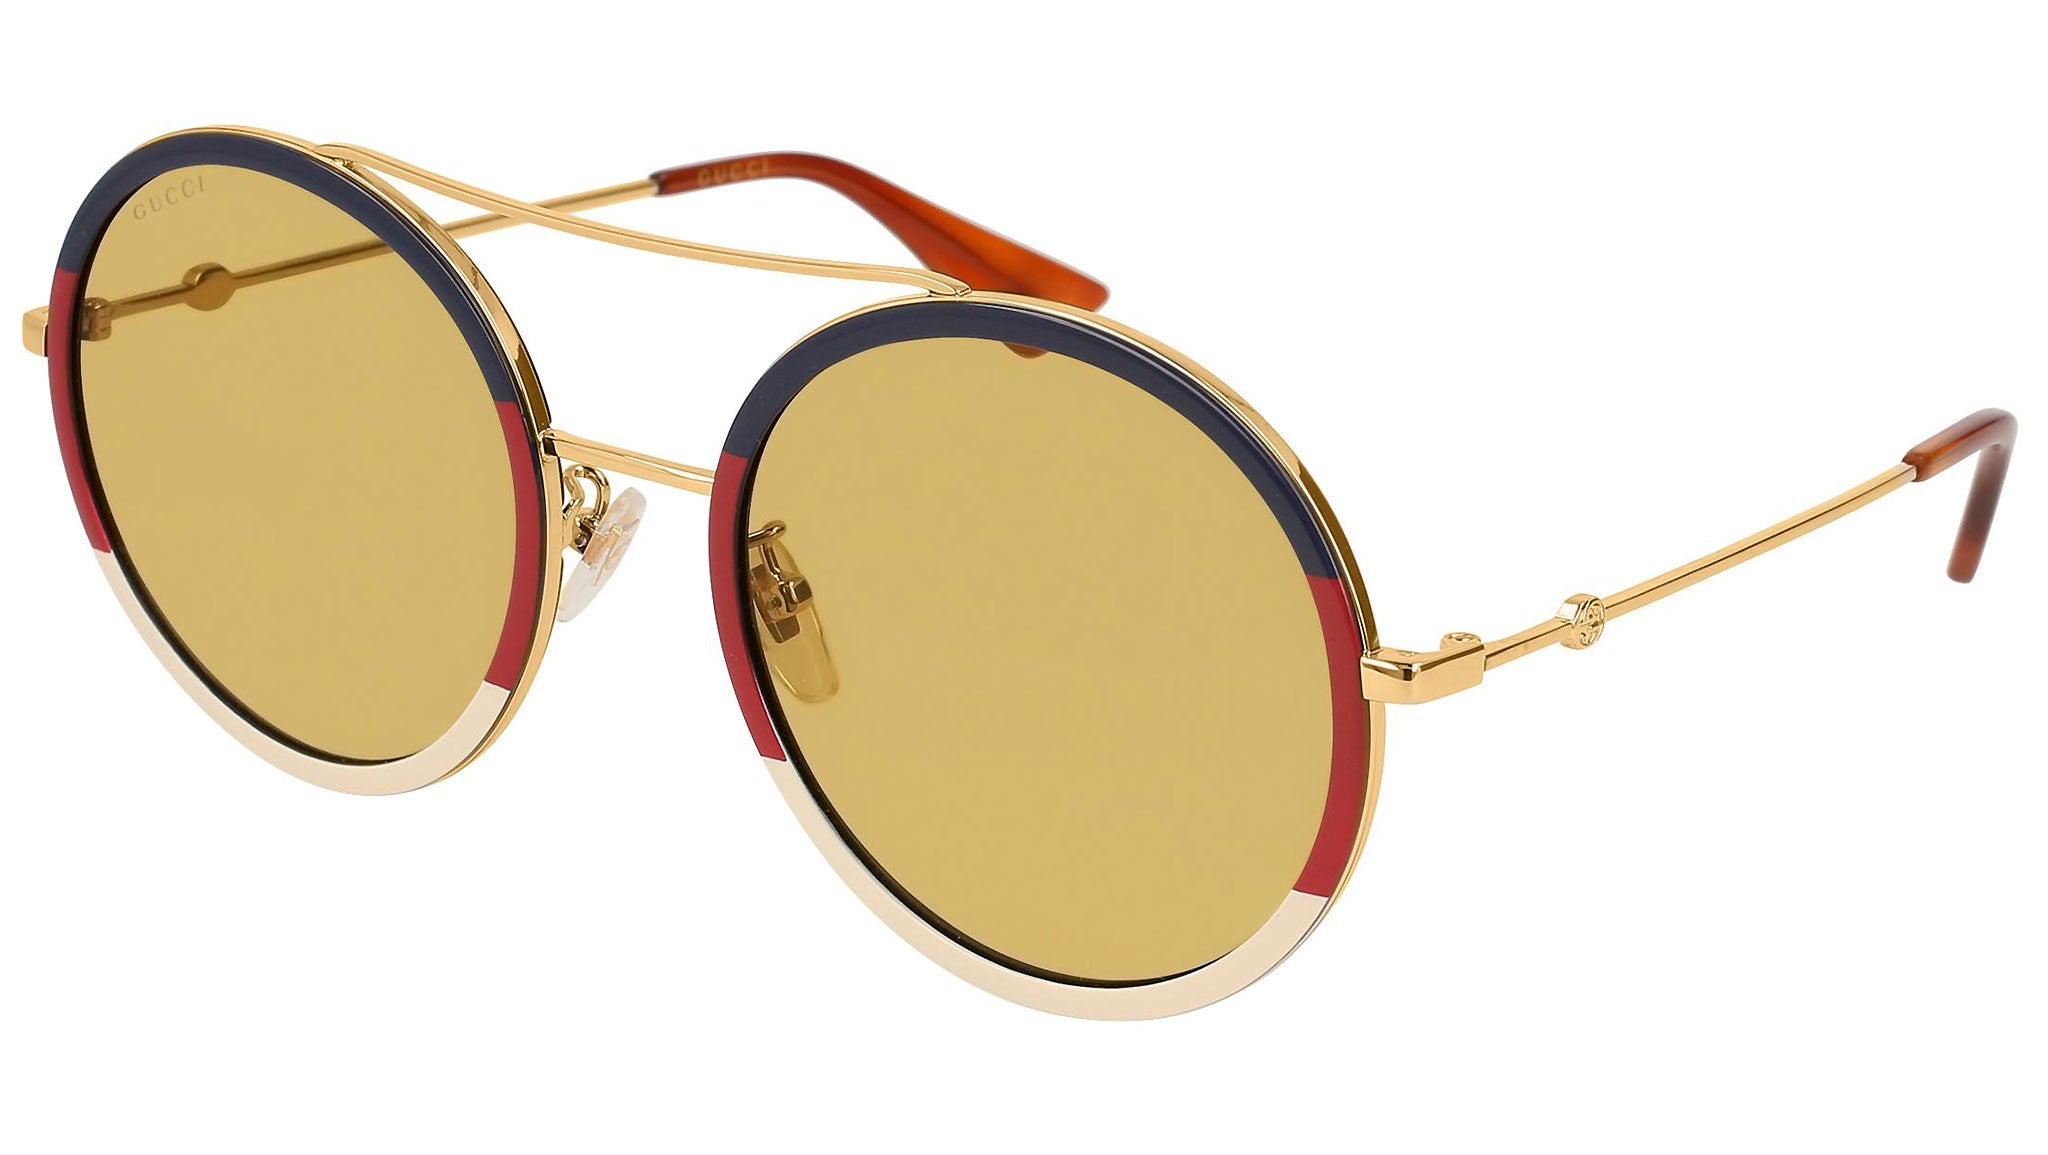 GG0061S multicolor gold and nicotine--eye-oo.it